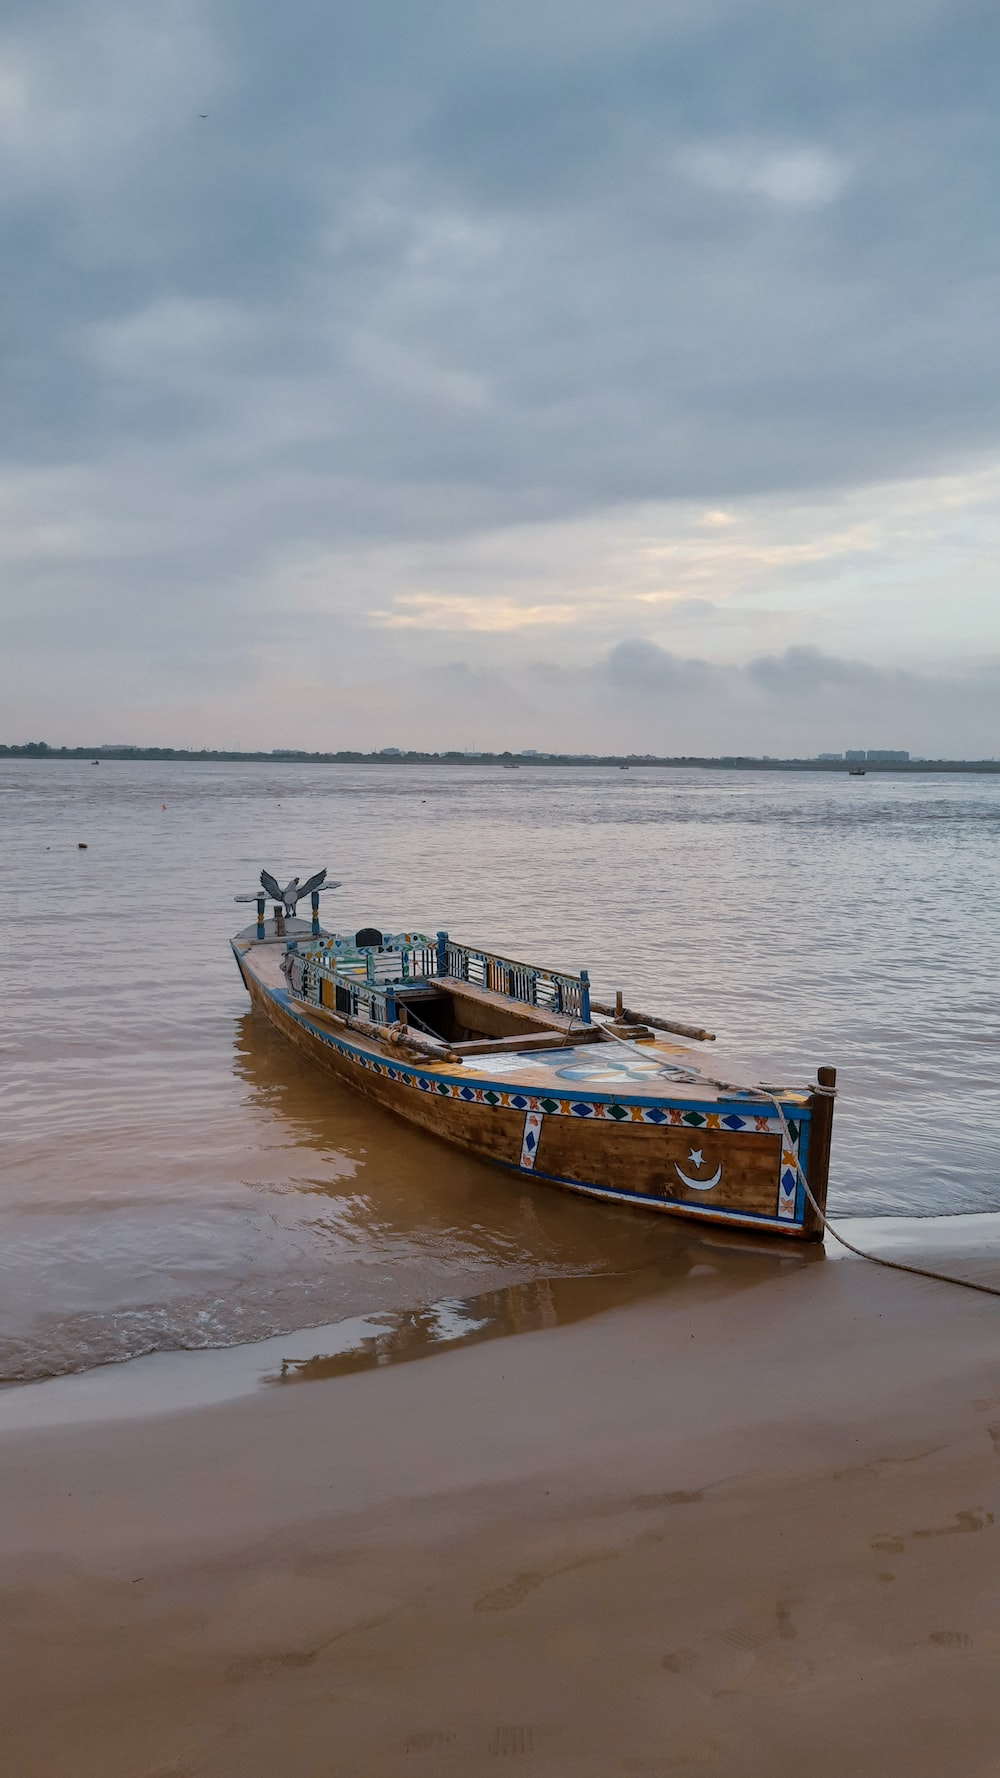 brown and white boat on sea shore during daytime